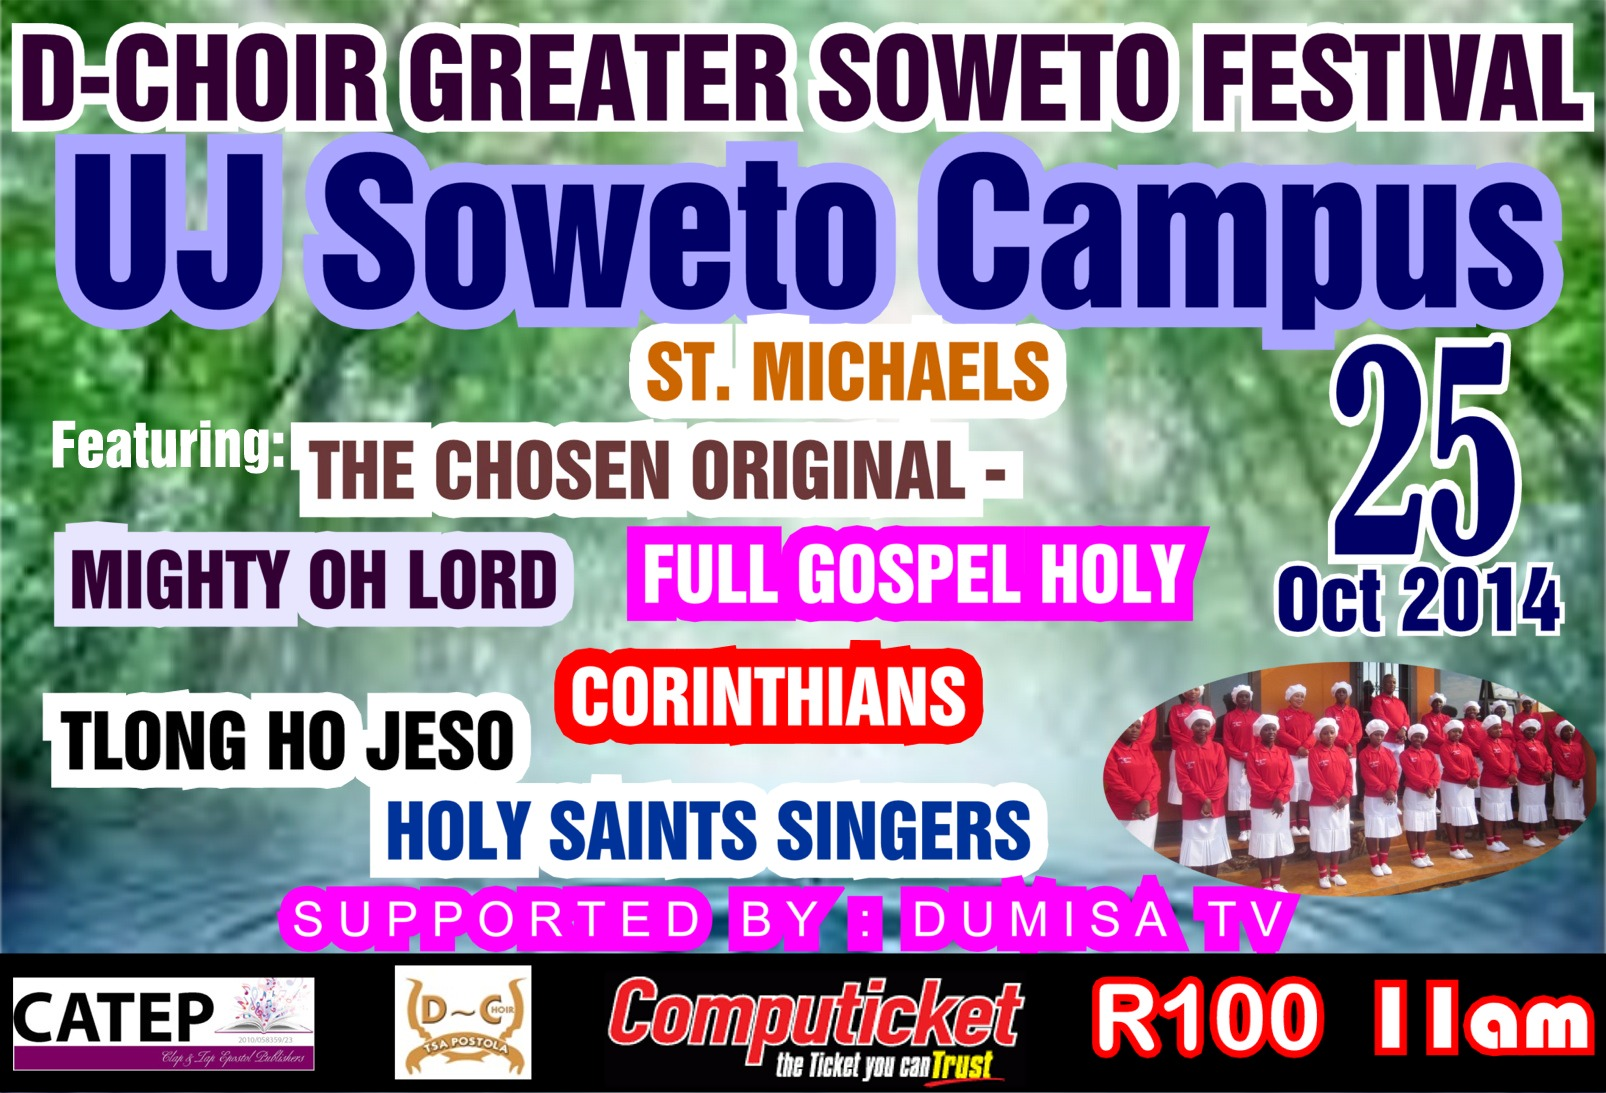 D CHOIR GREATER SOWETO dms